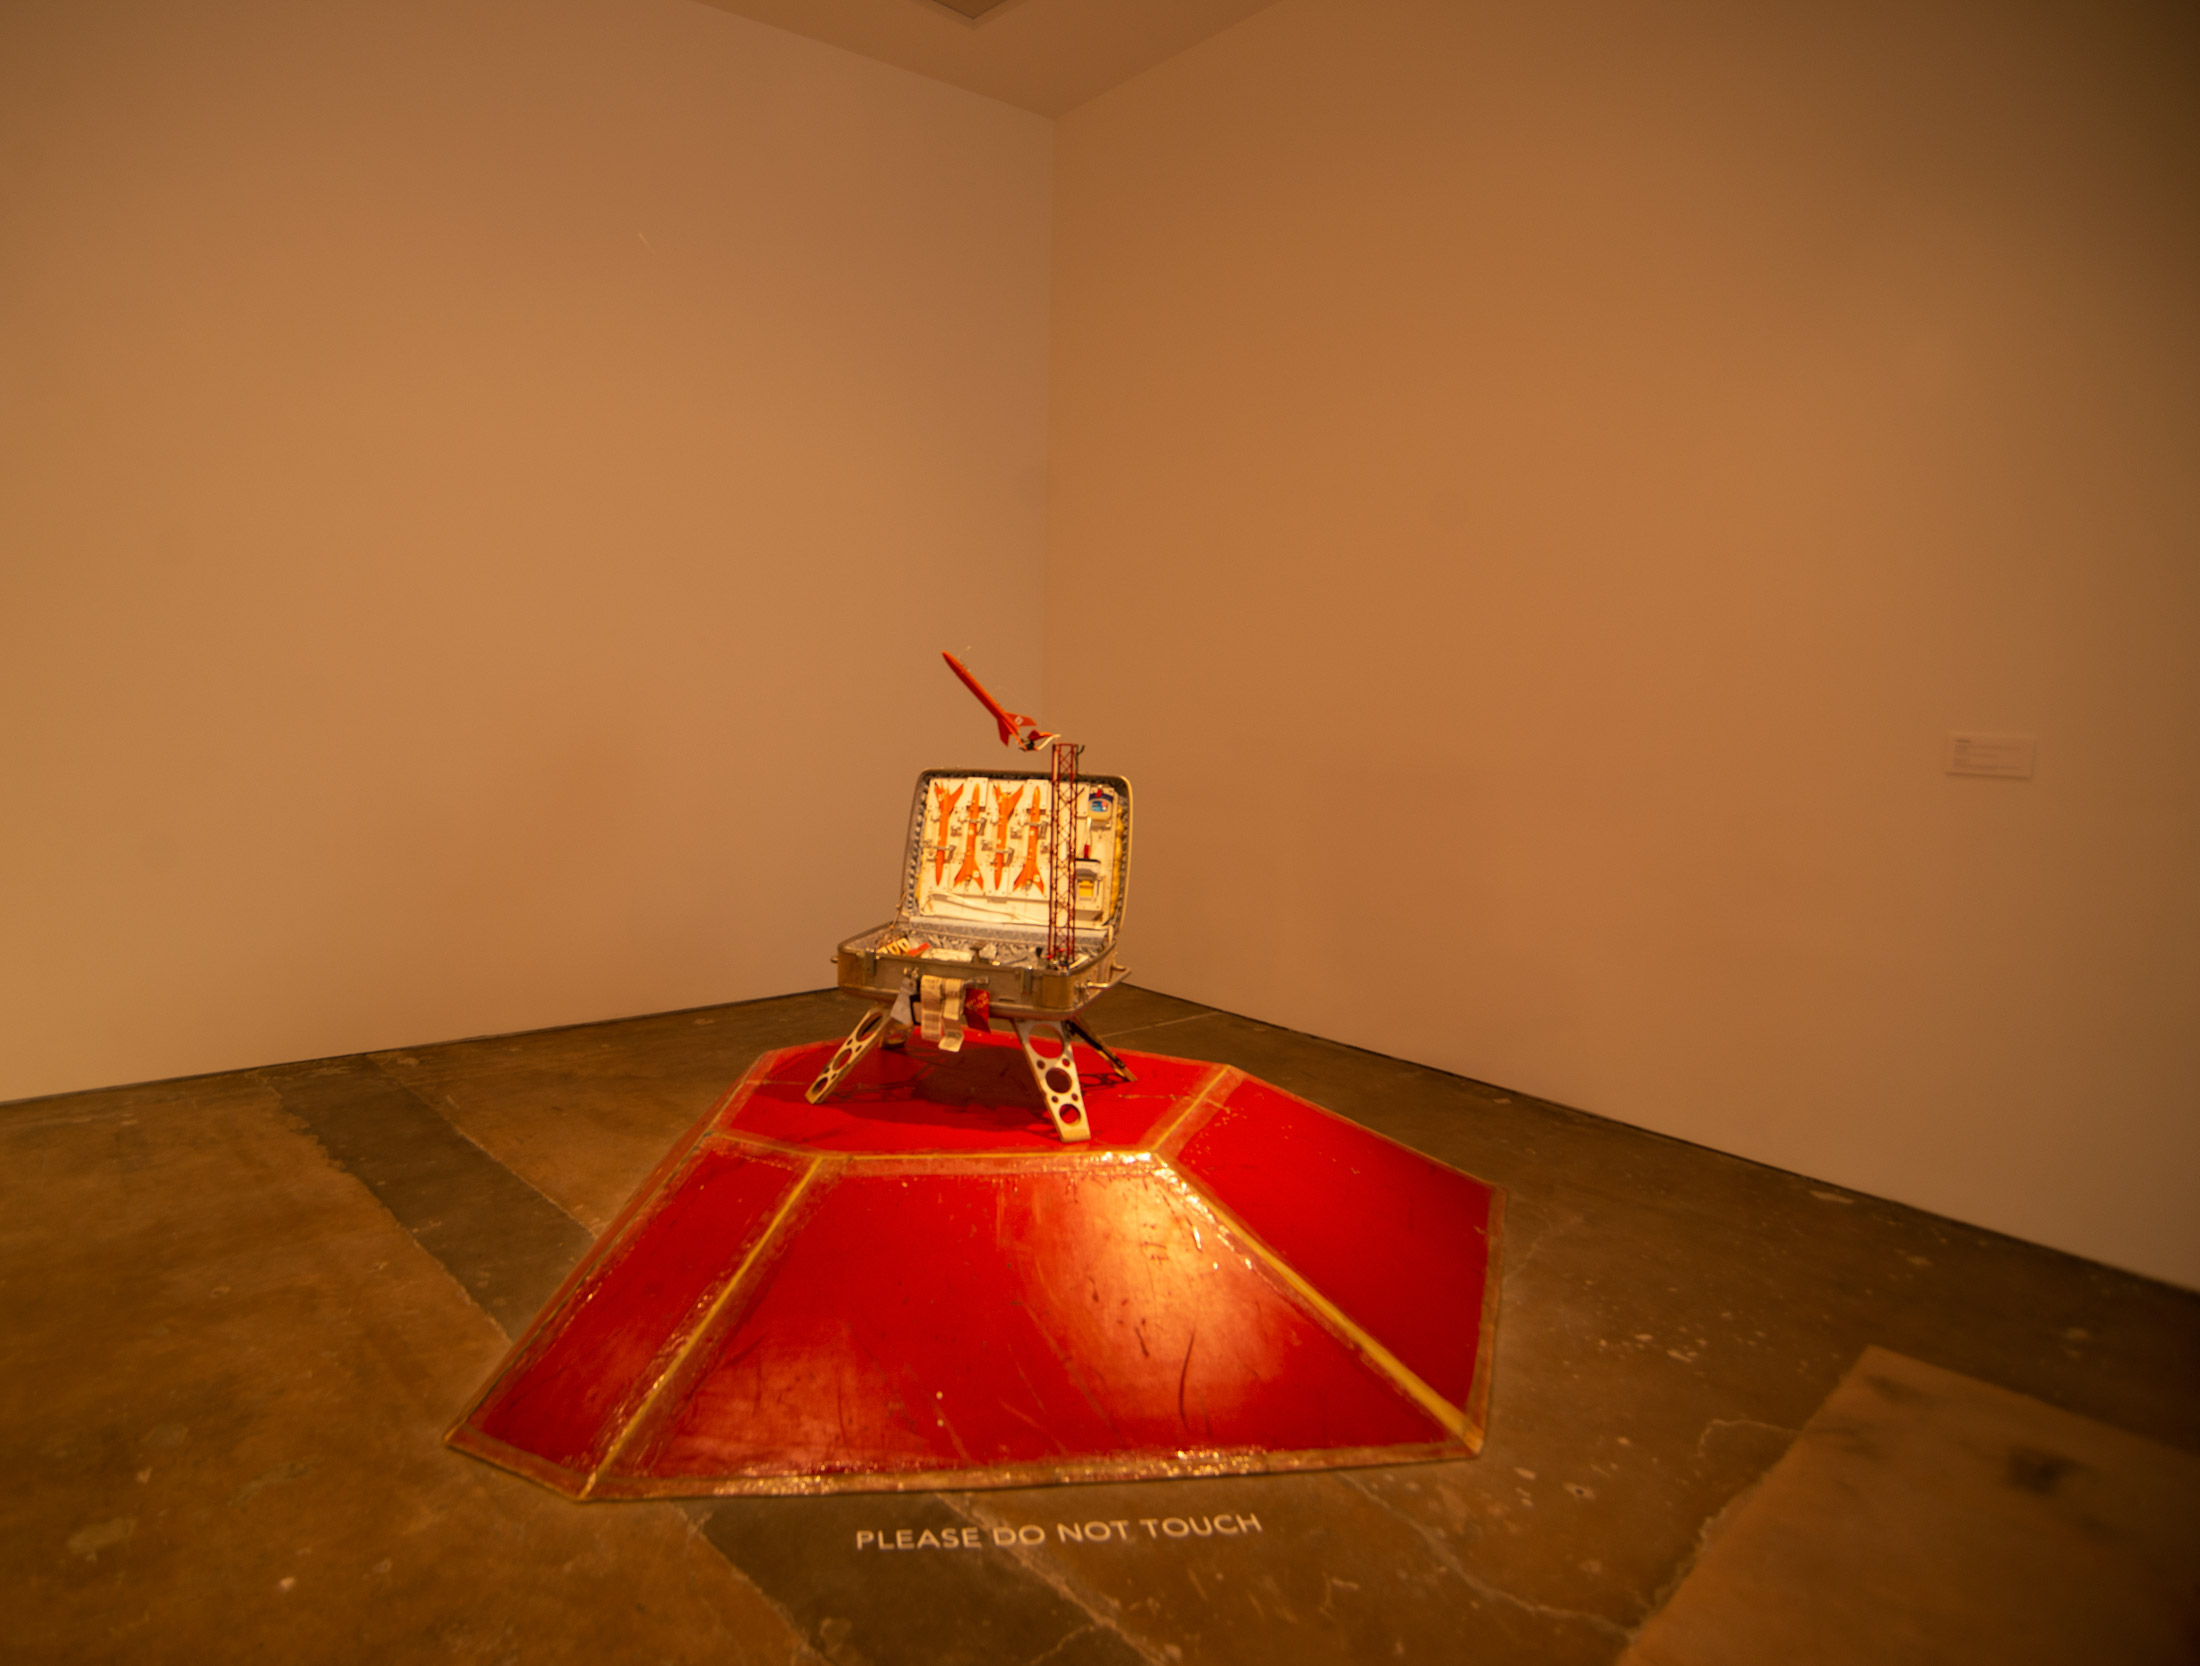 a sculpture by Tom Sachs from his series Space Program